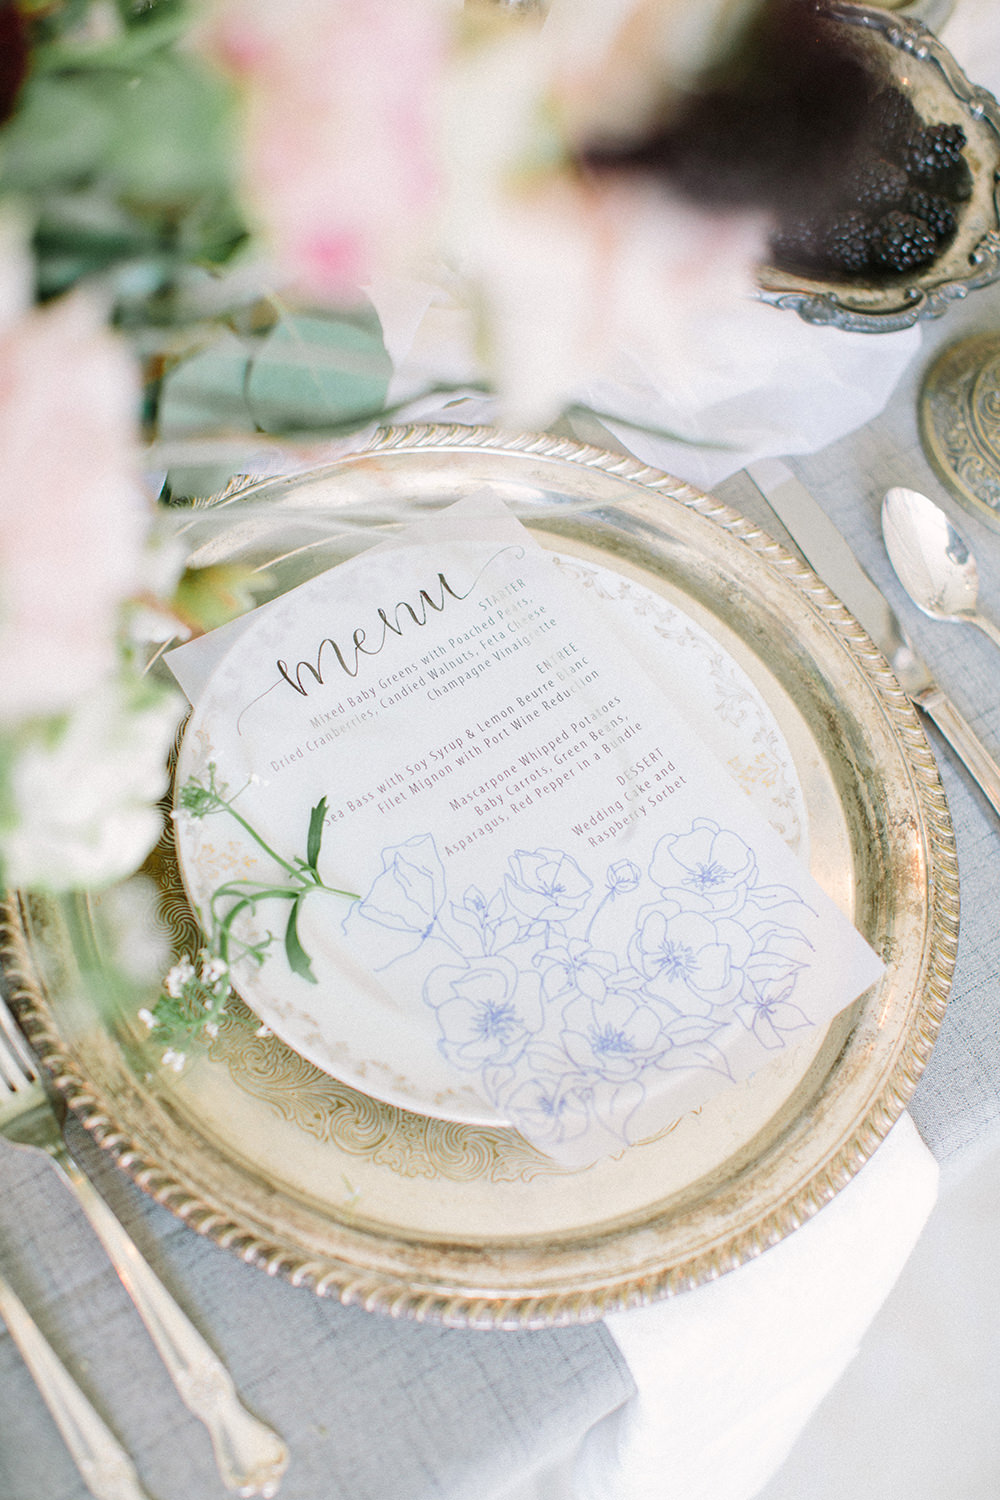 place settings - photo by Erica J Photography http://ruffledblog.com/old-world-wedding-editorial-at-vizcaya-museum